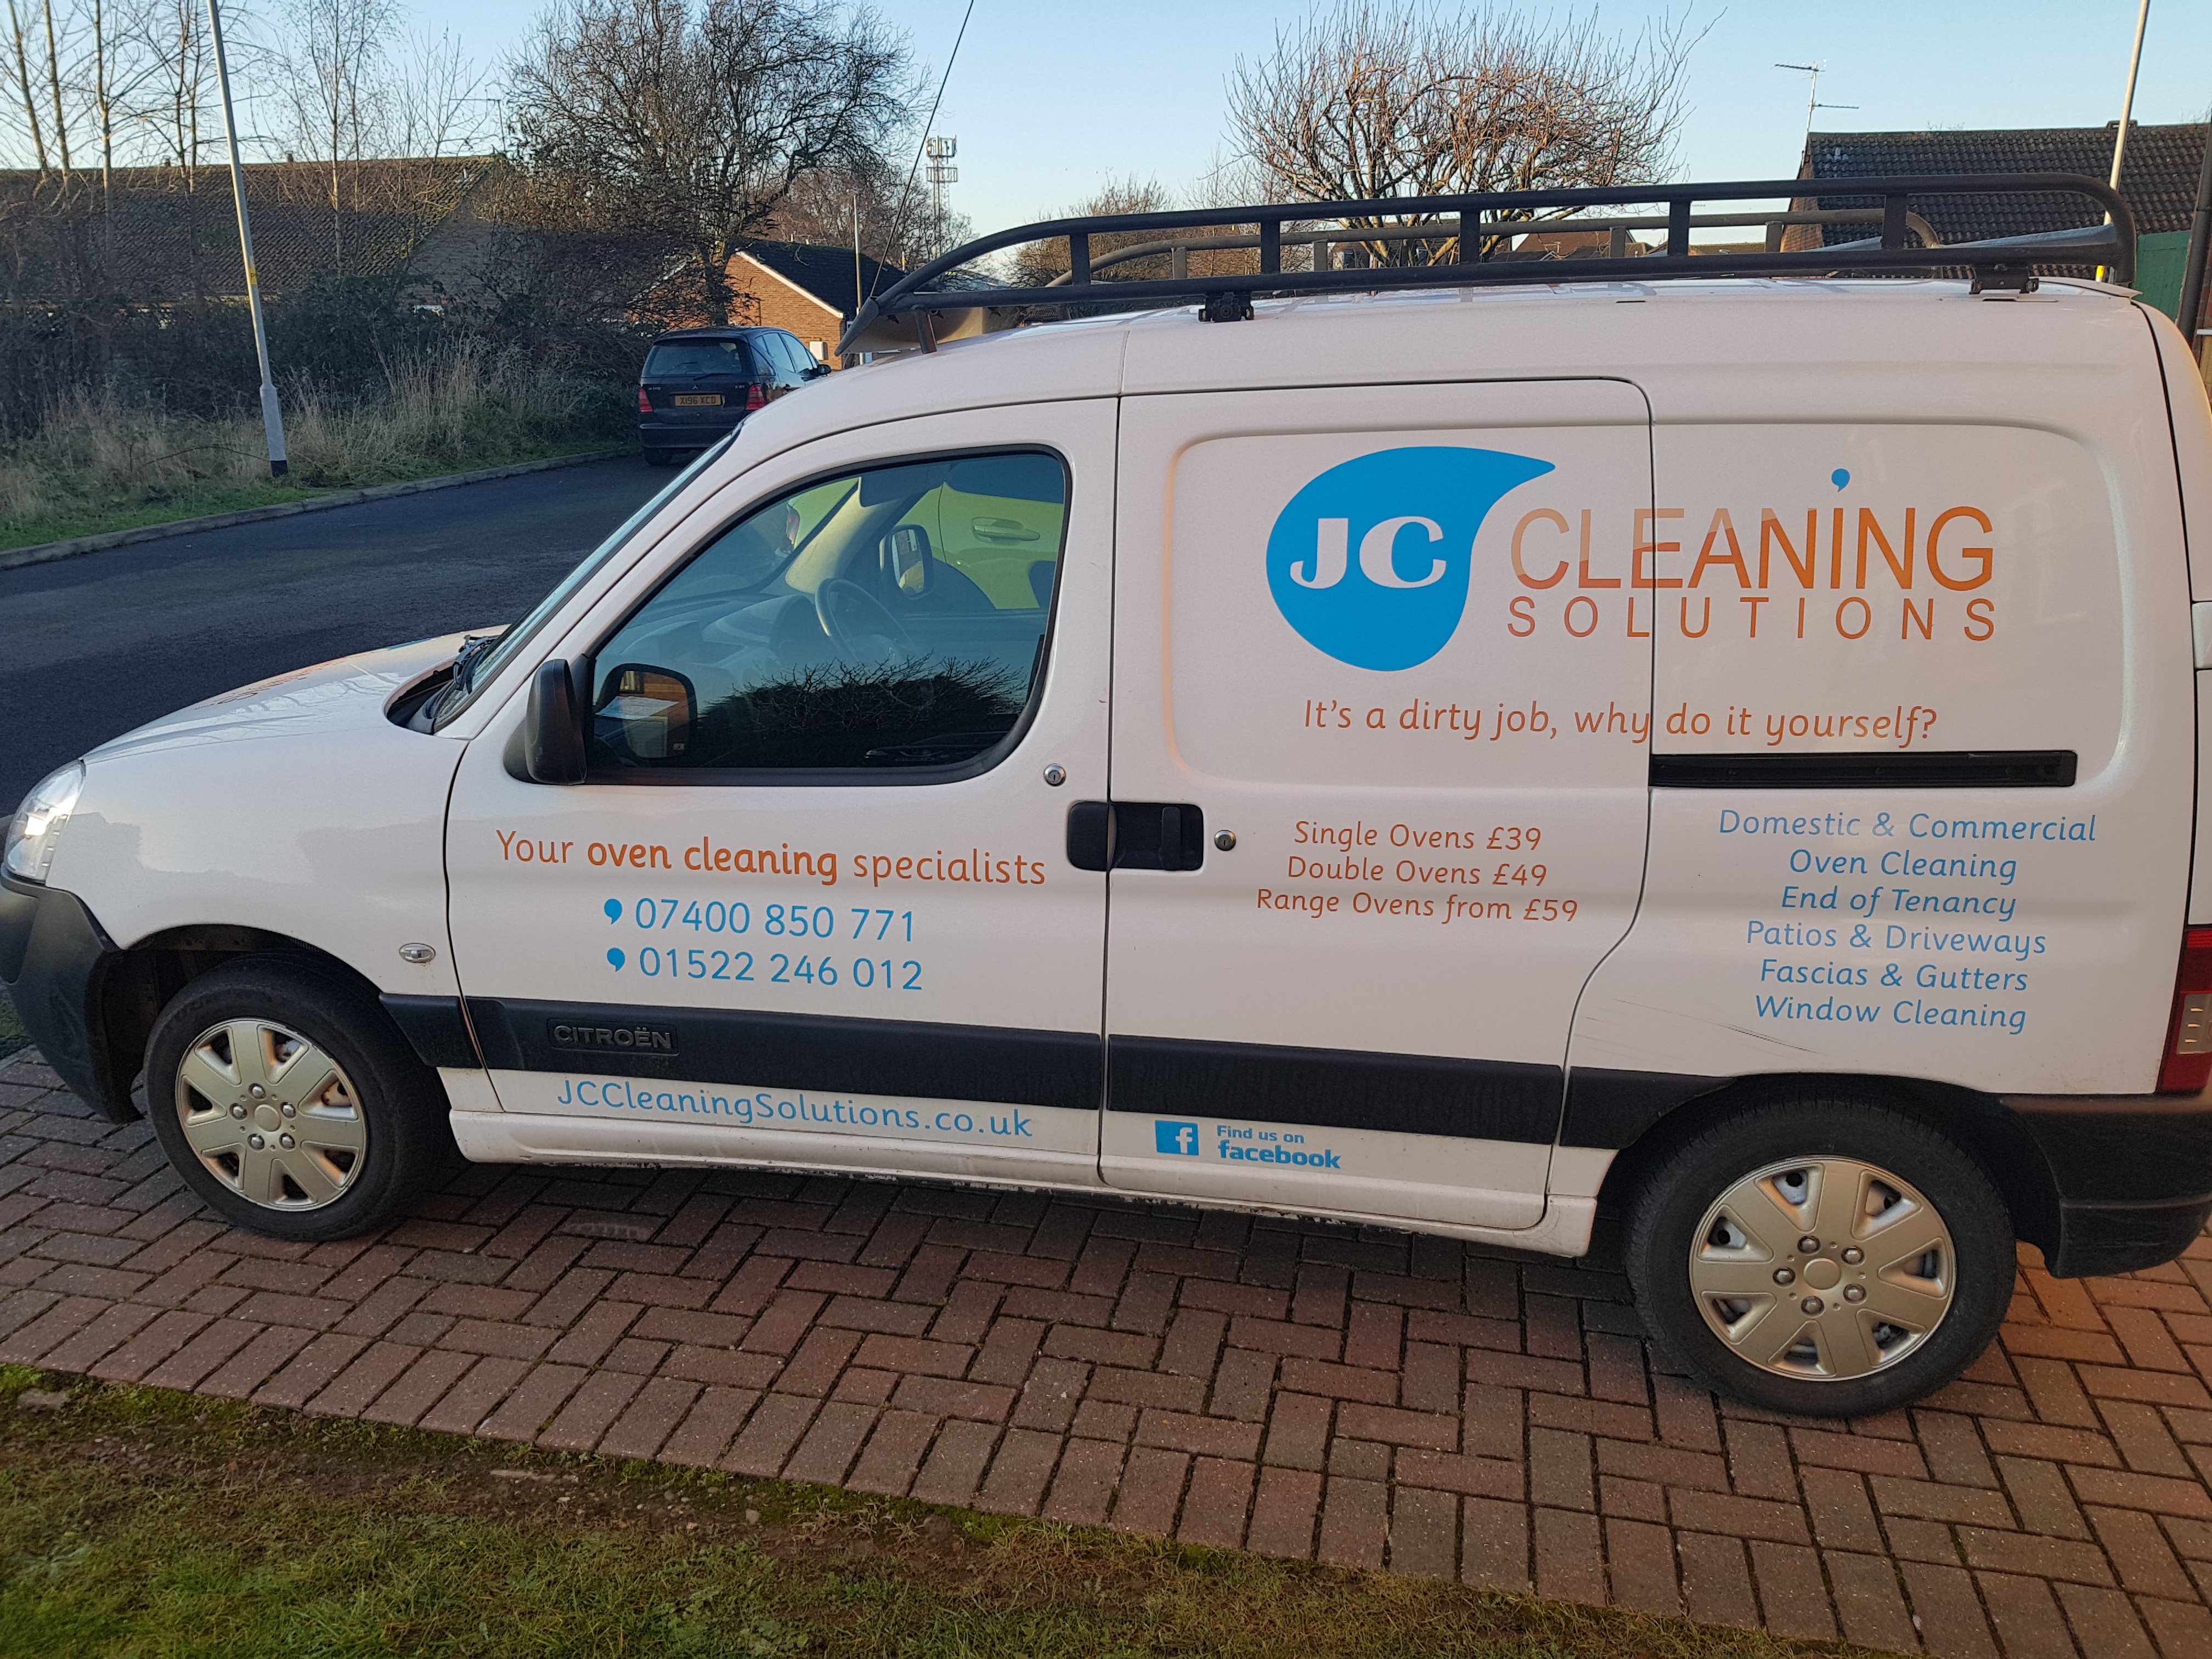 Jc cleaning solutions reviews solutioingenieria Choice Image